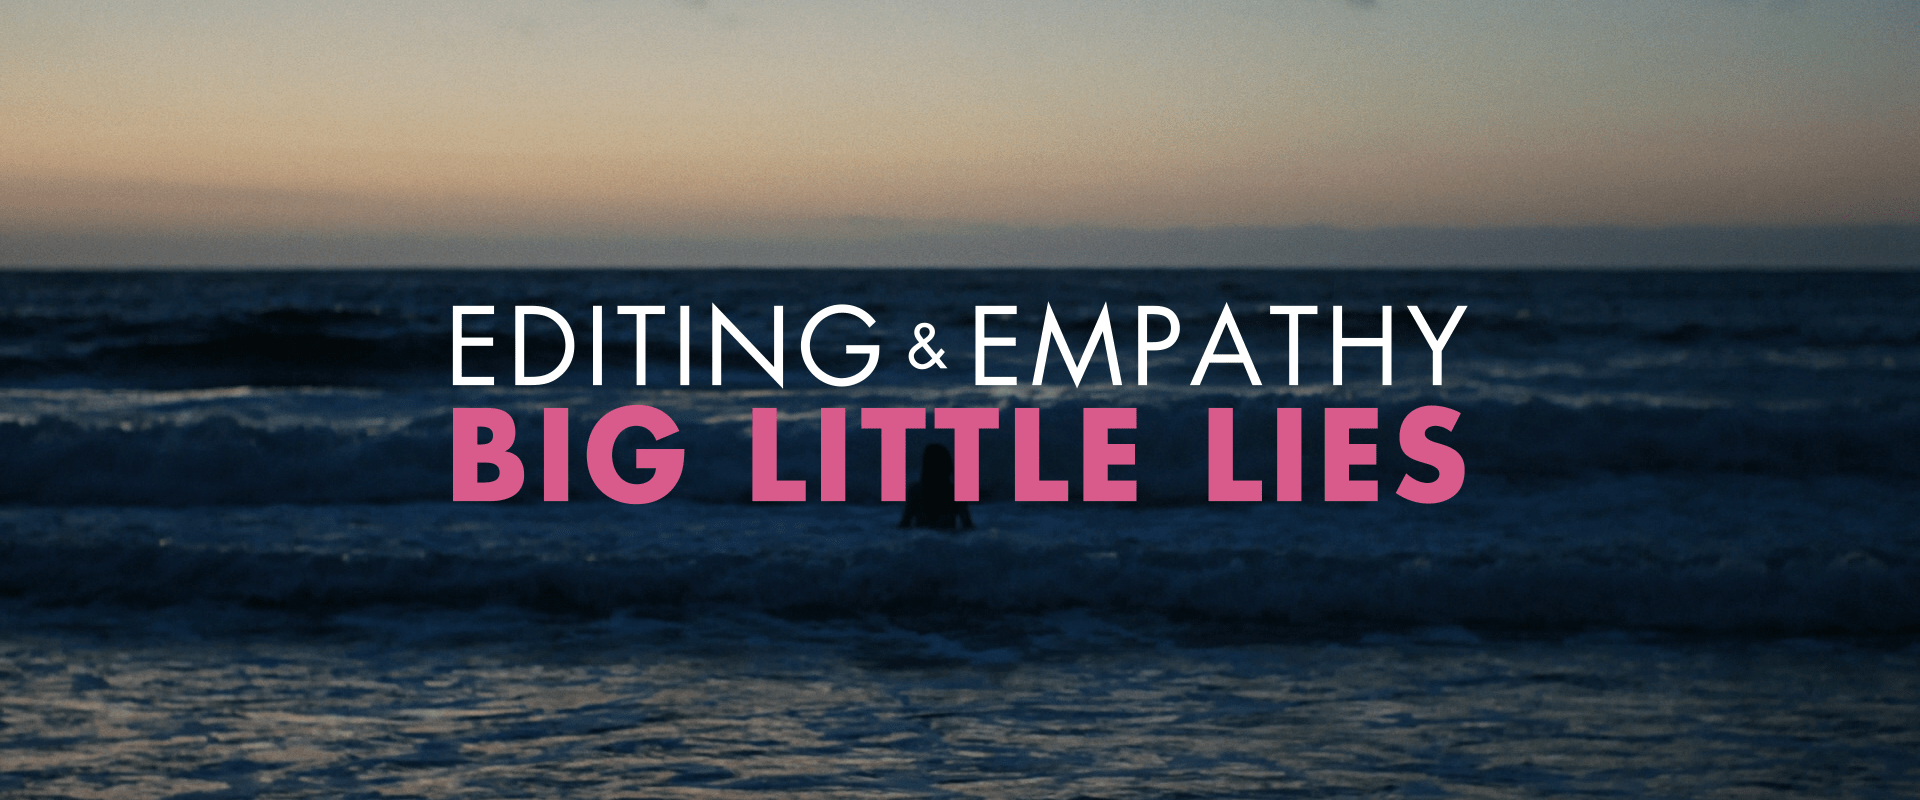 big little lies - editing & empathy